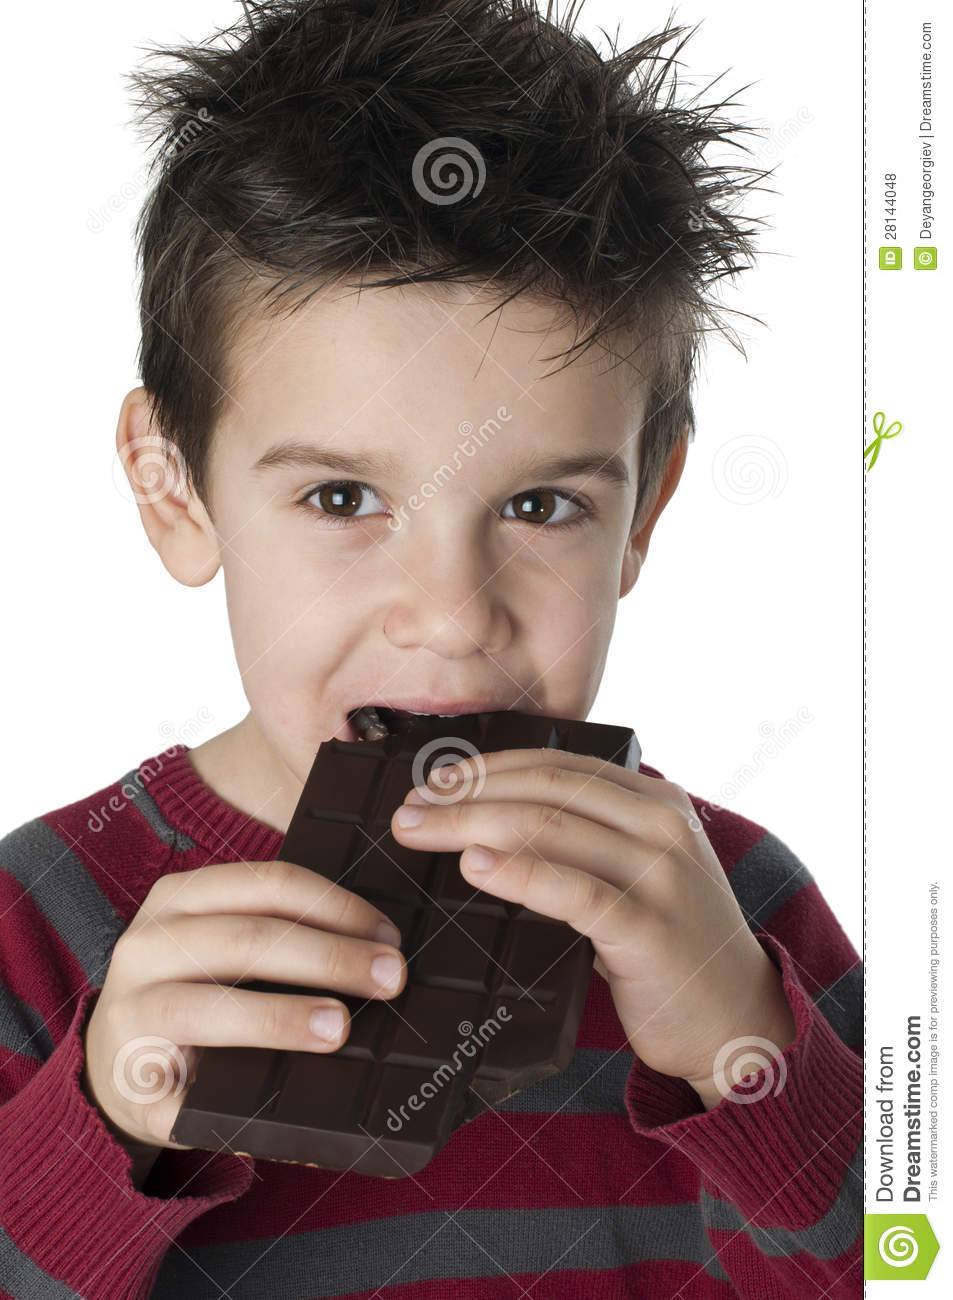 Smiling Kid Eating Chocolate Royalty Free Stock Photos ...